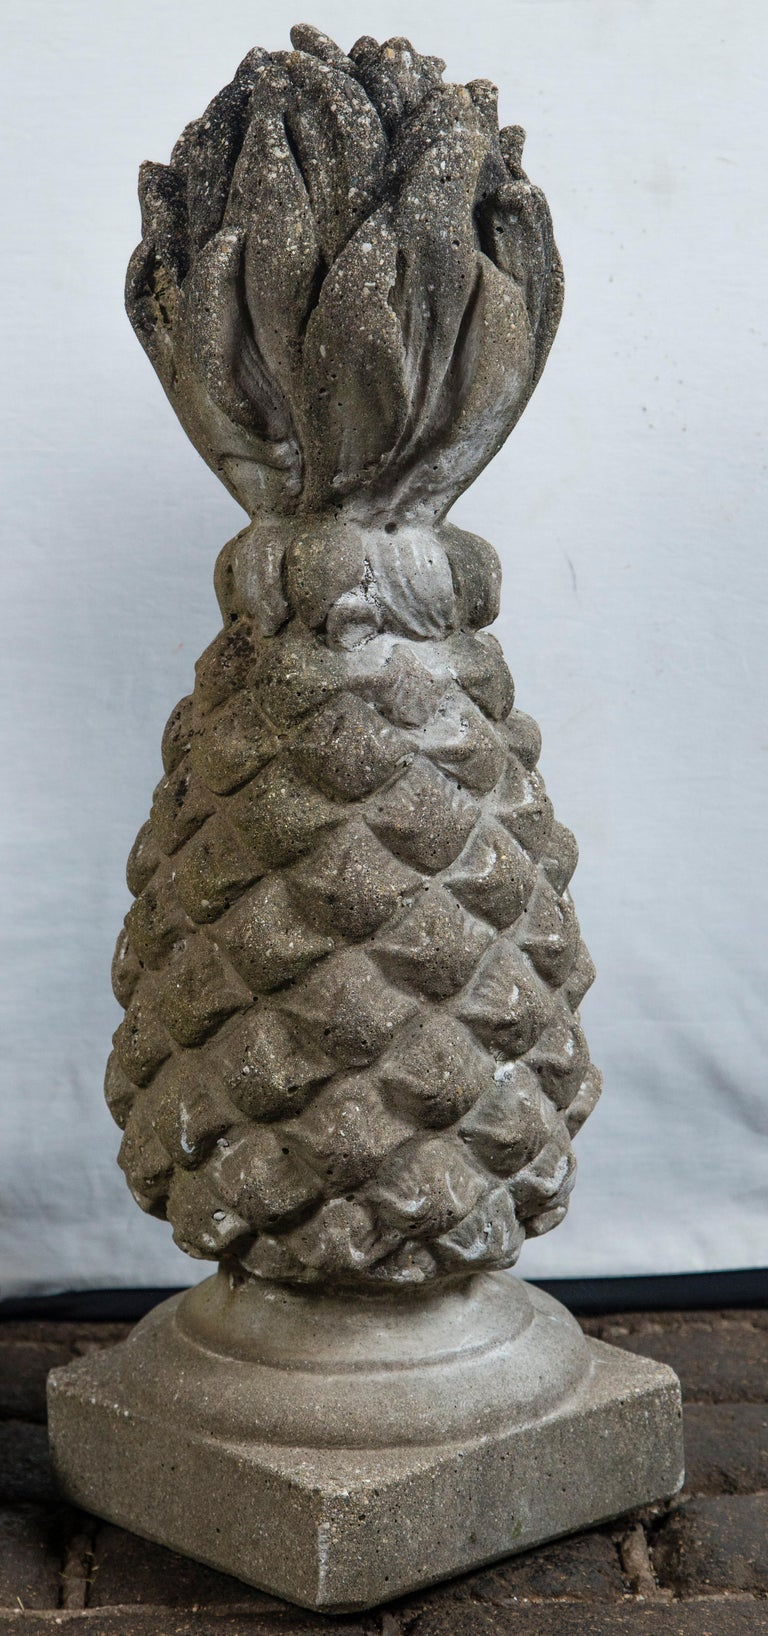 High relief pair of cast stone pineapple garden ornaments. Marked Henri Studio Inc Palatine Ill.